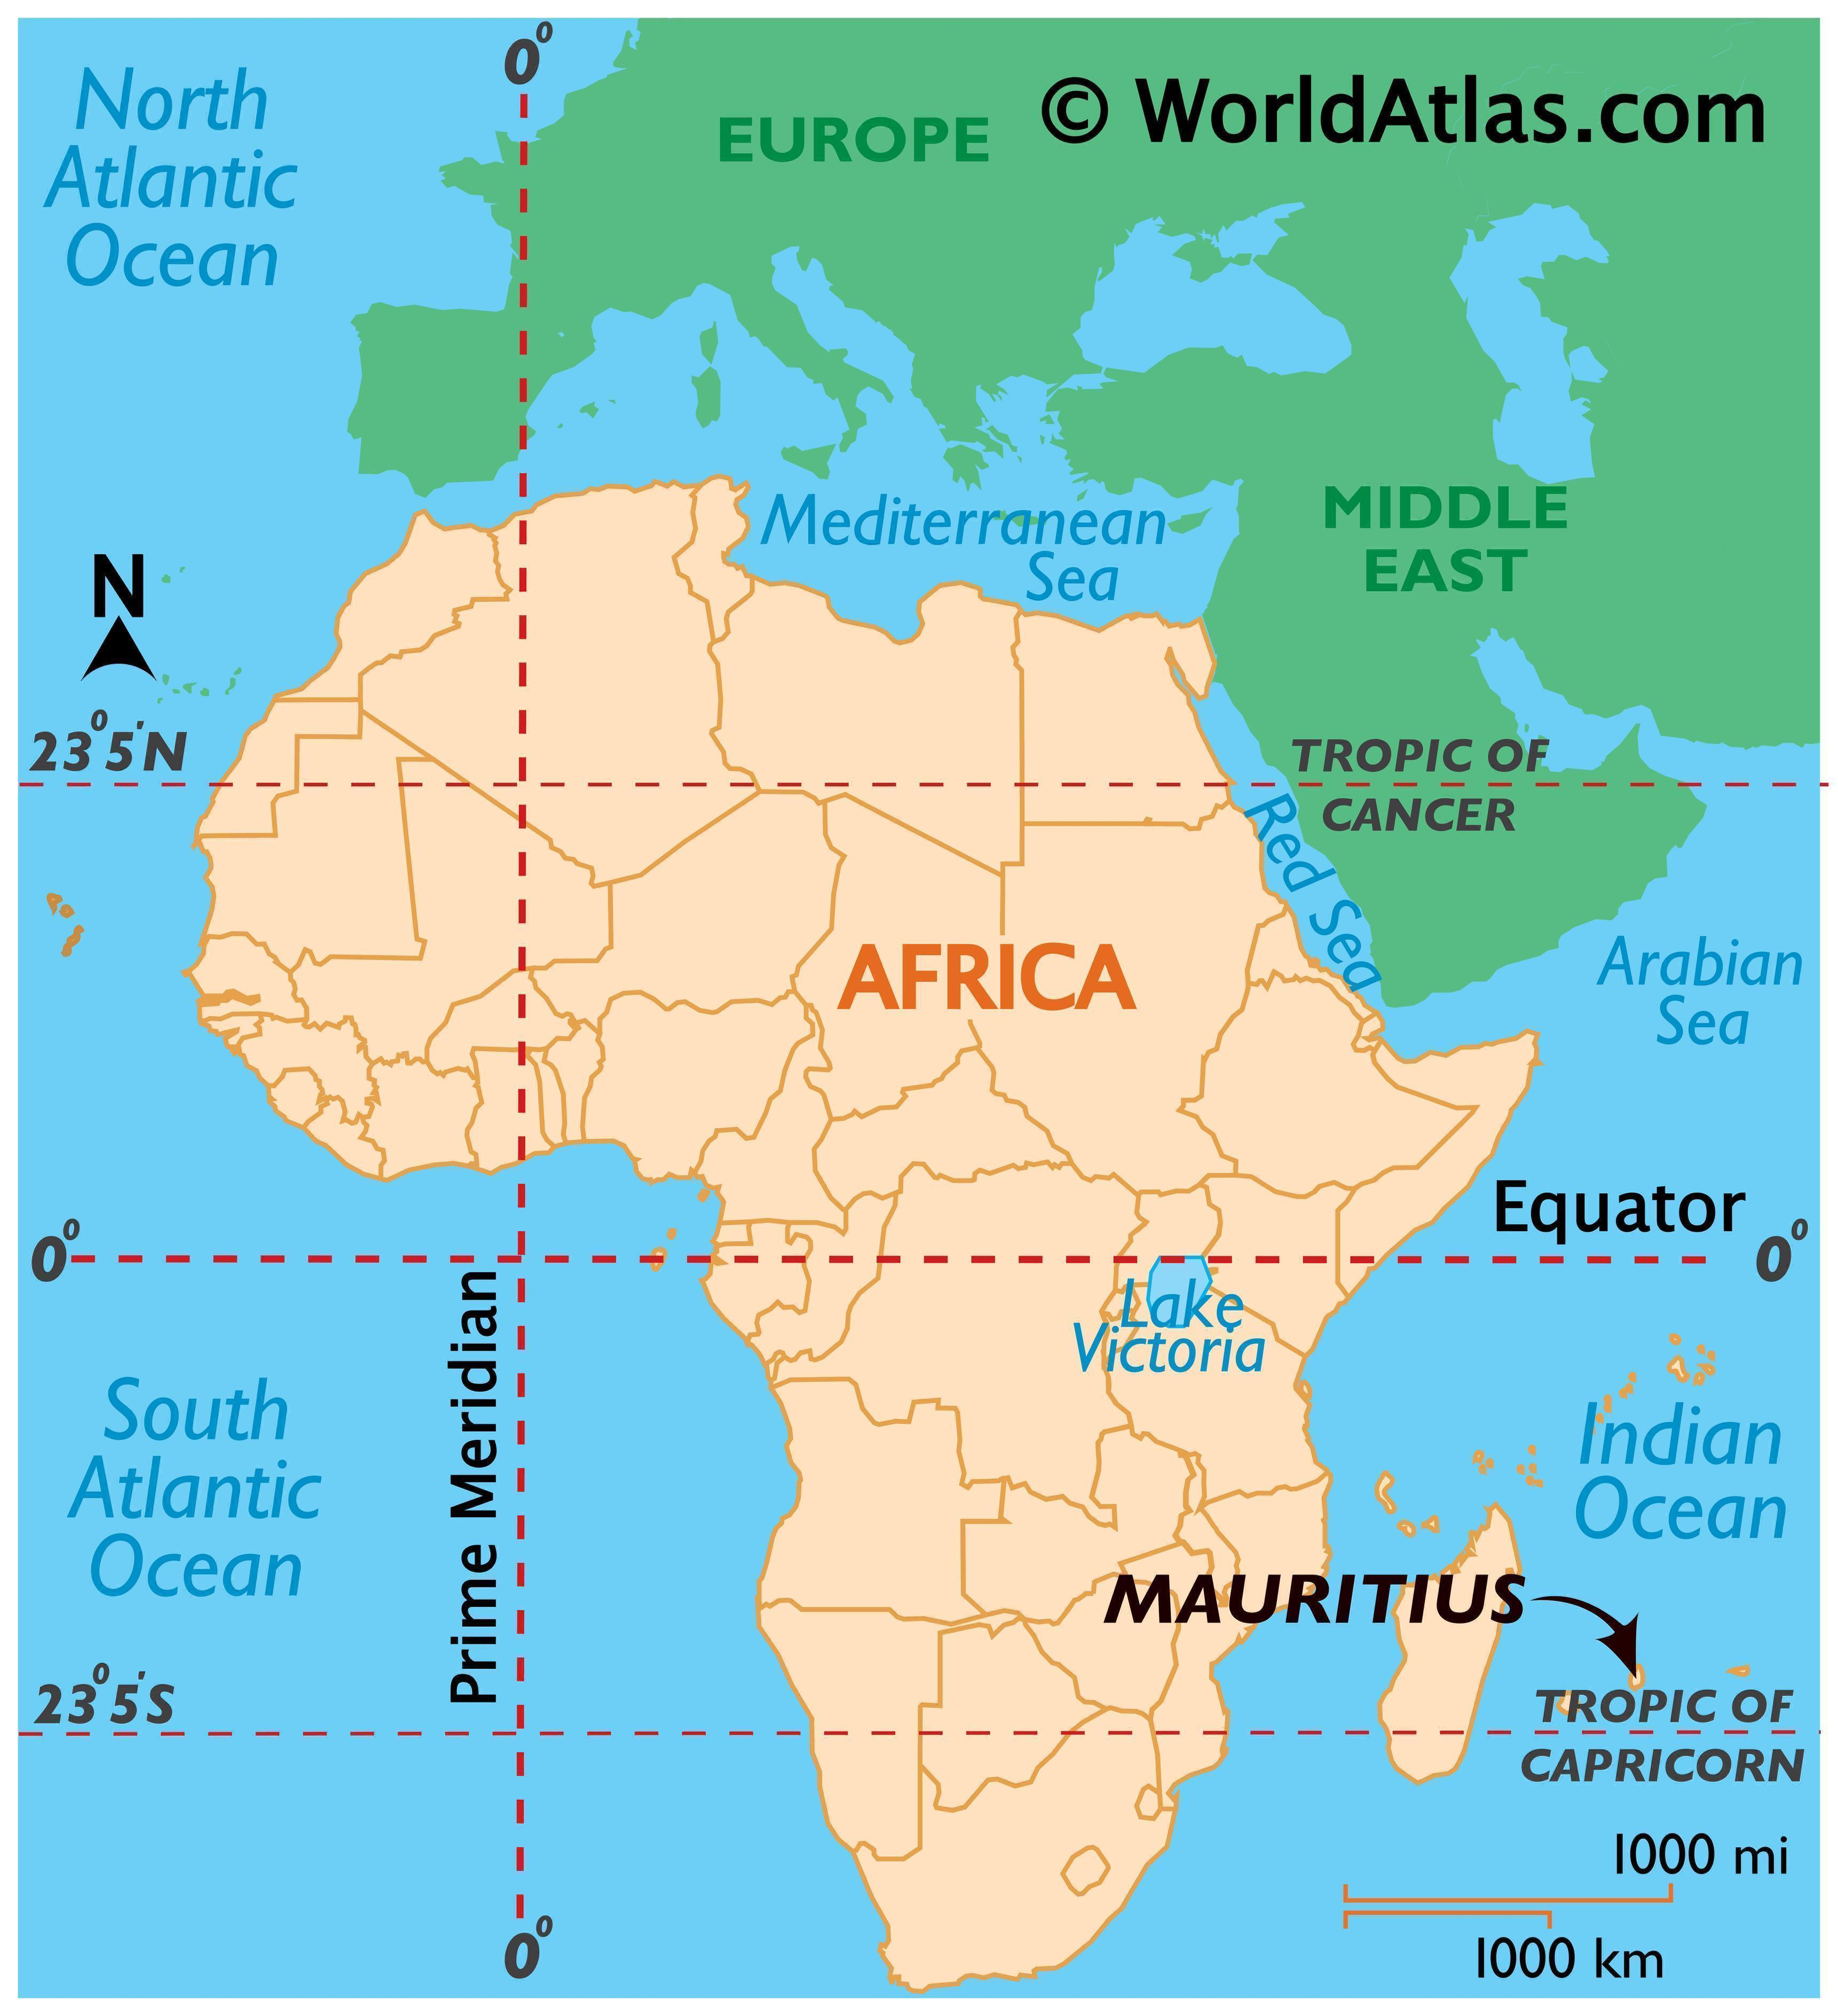 Where is Mauritius?